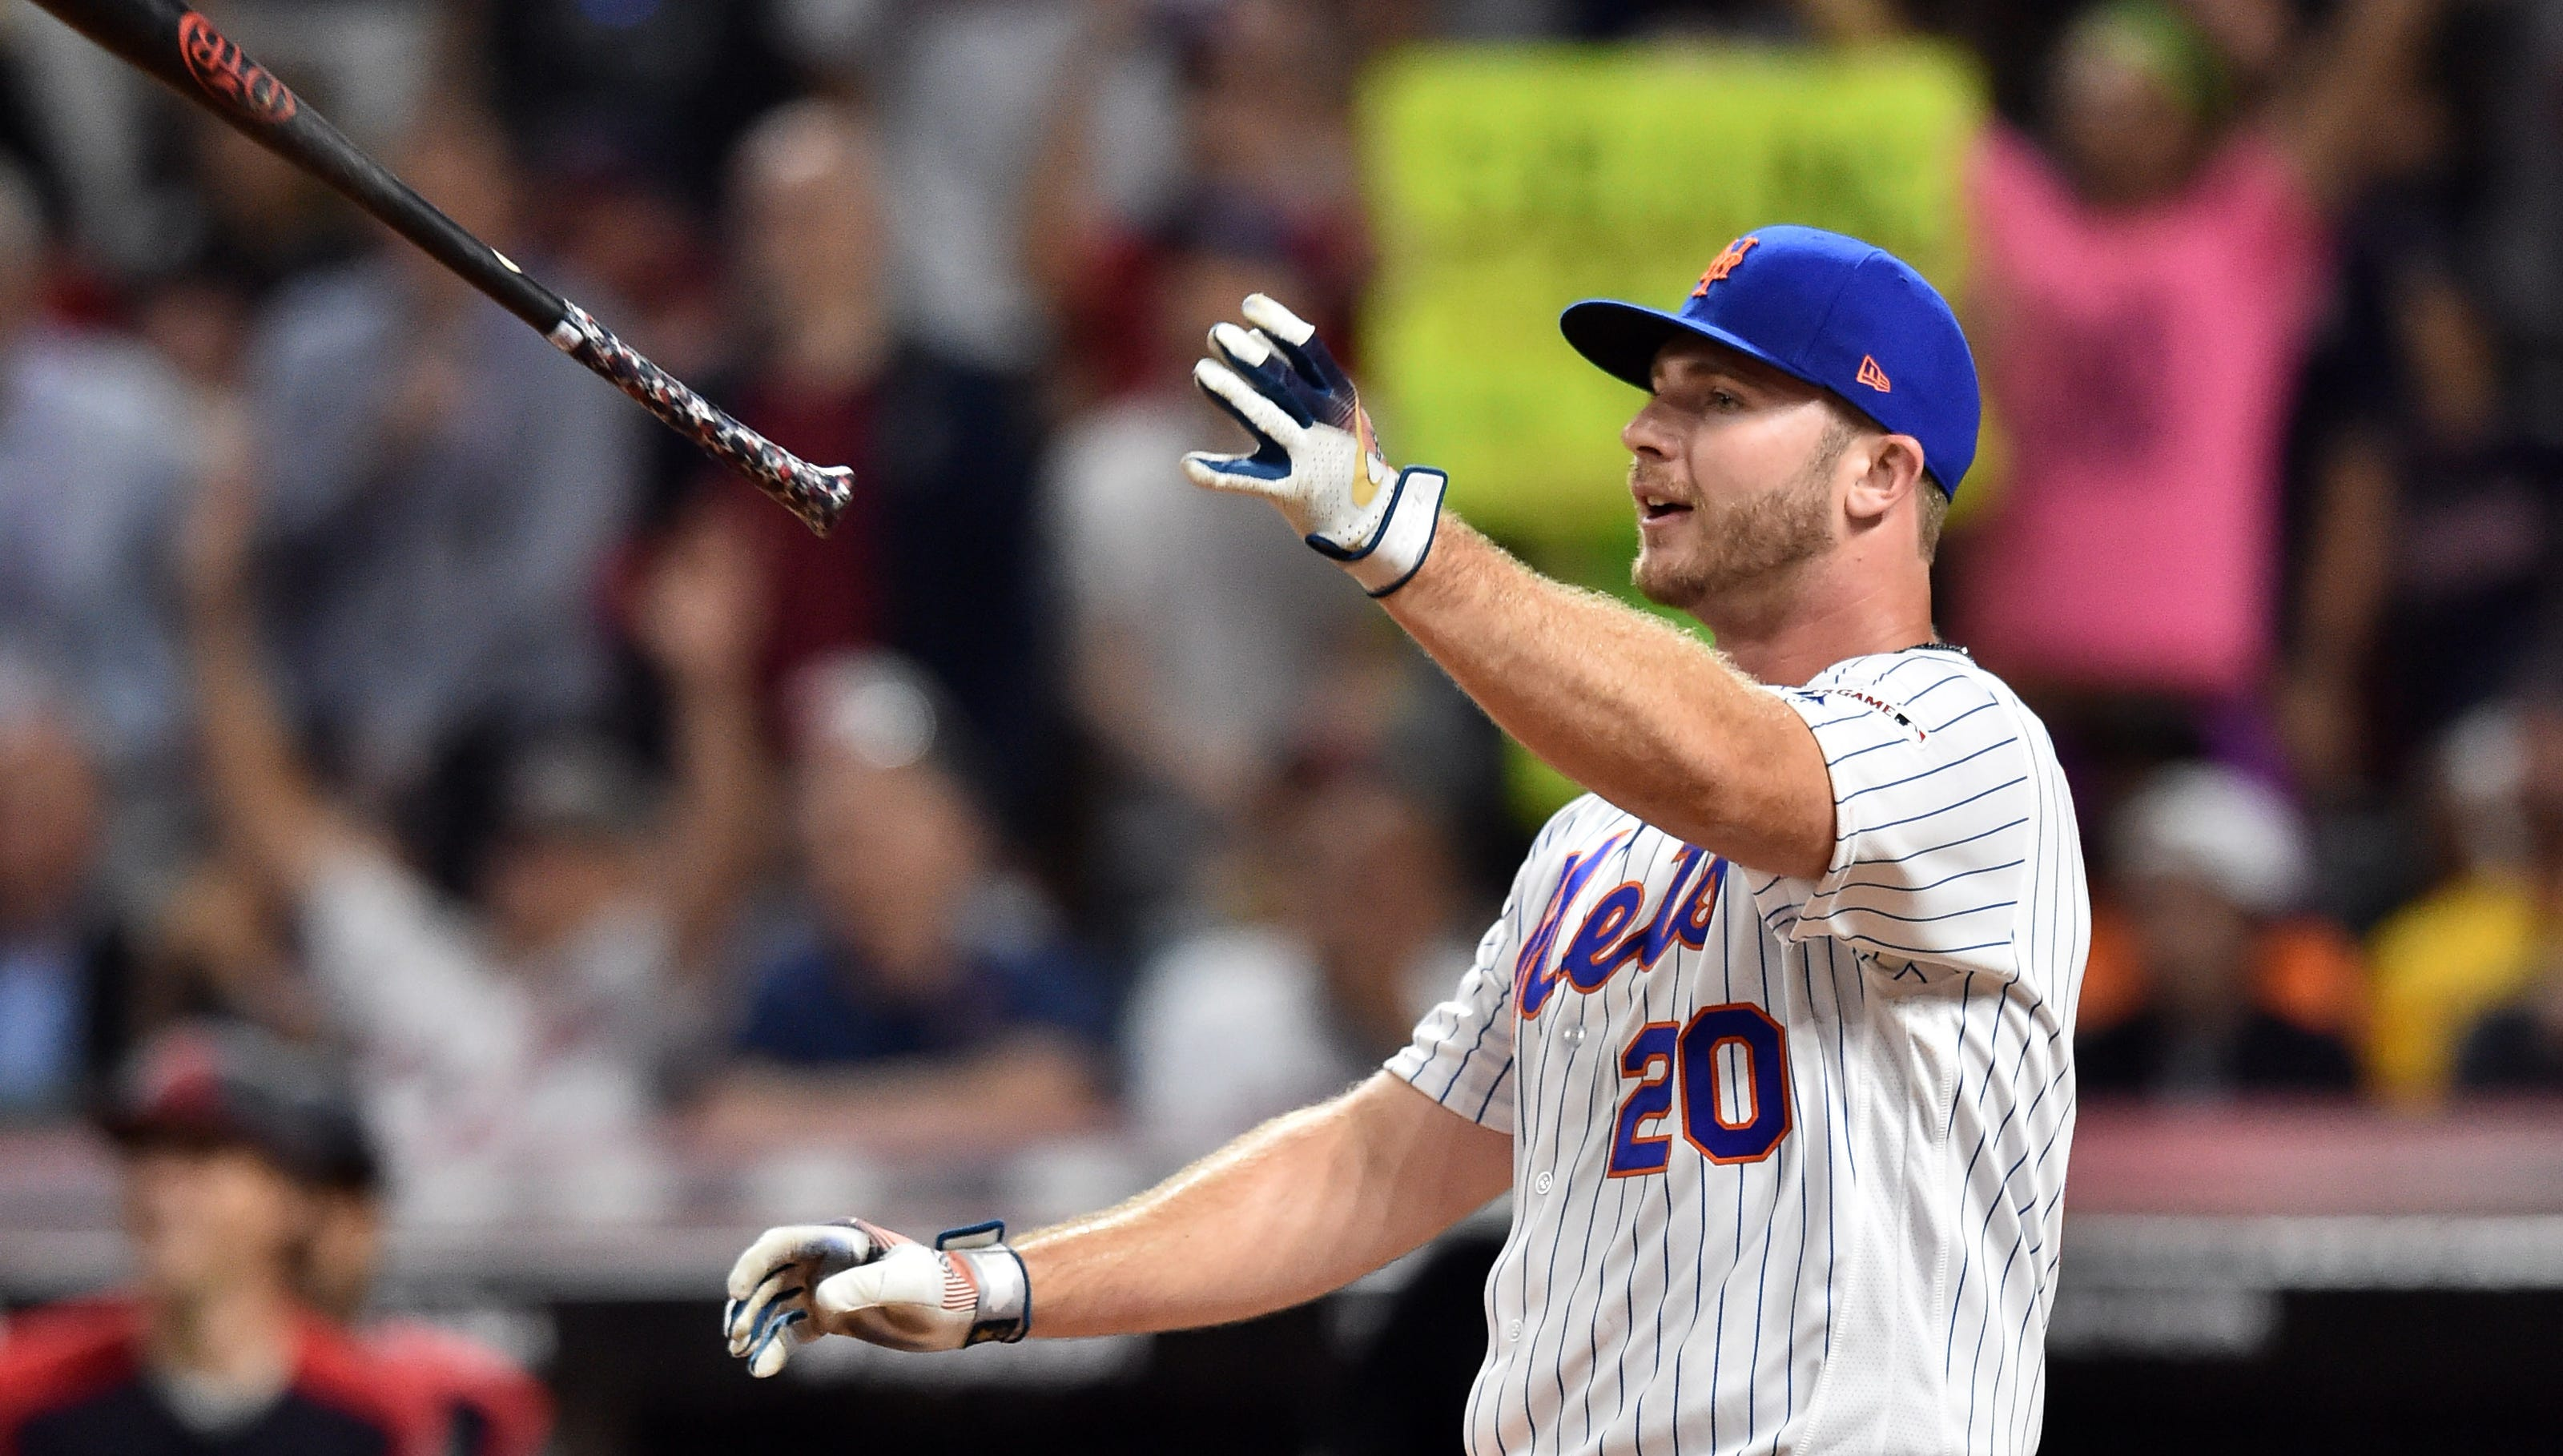 Pete Alonso in Home Run Derby 2021, NY Mets star defending title